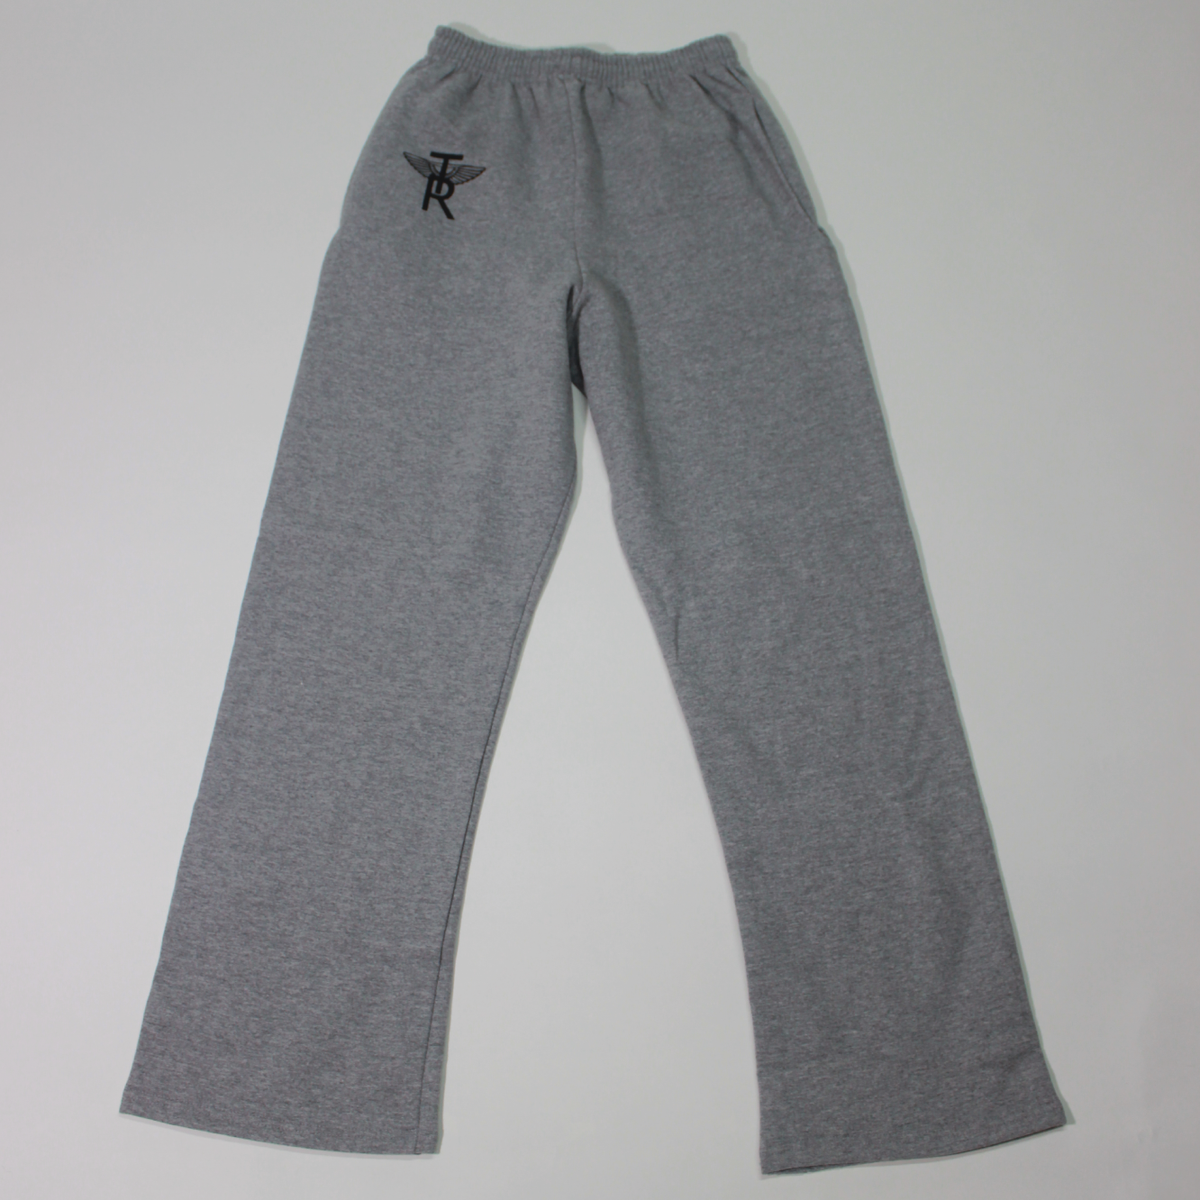 Image of TR Wings Sweatpants in Grey